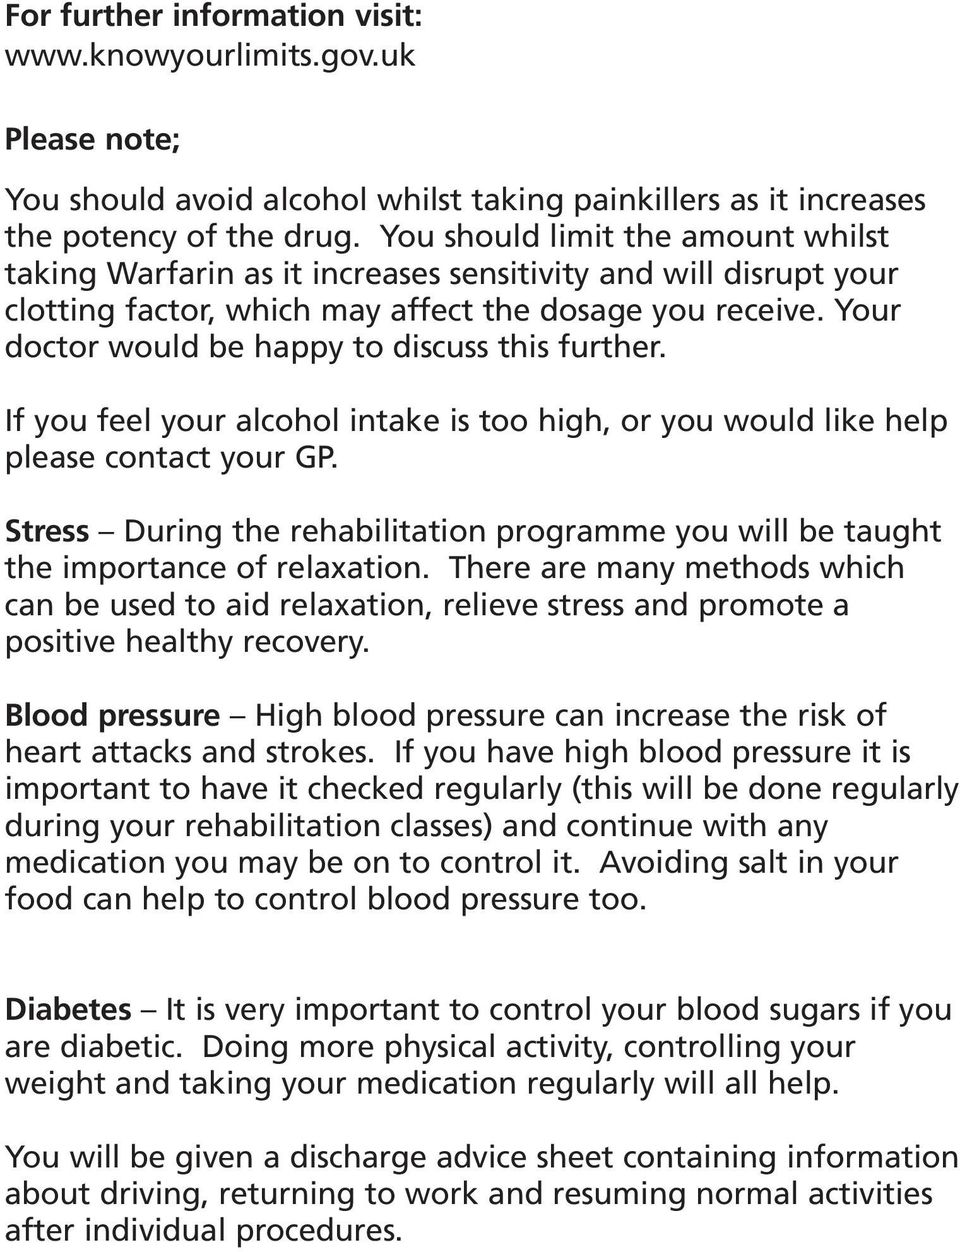 Your doctor would be happy to discuss this further. If you feel your alcohol intake is too high, or you would like help please contact your GP.